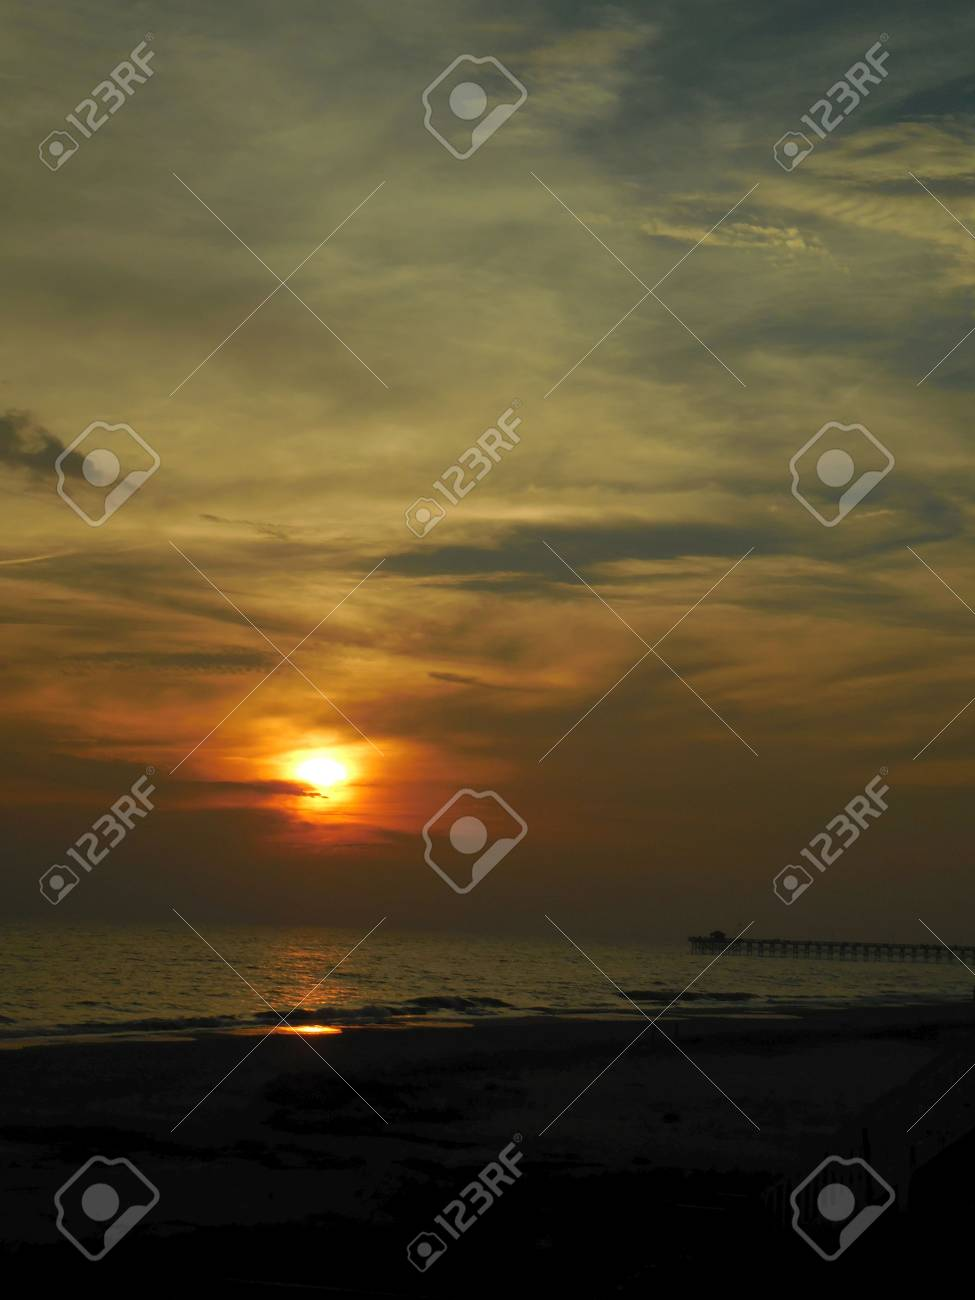 Sunset at the beach Stock Photo - 73099839